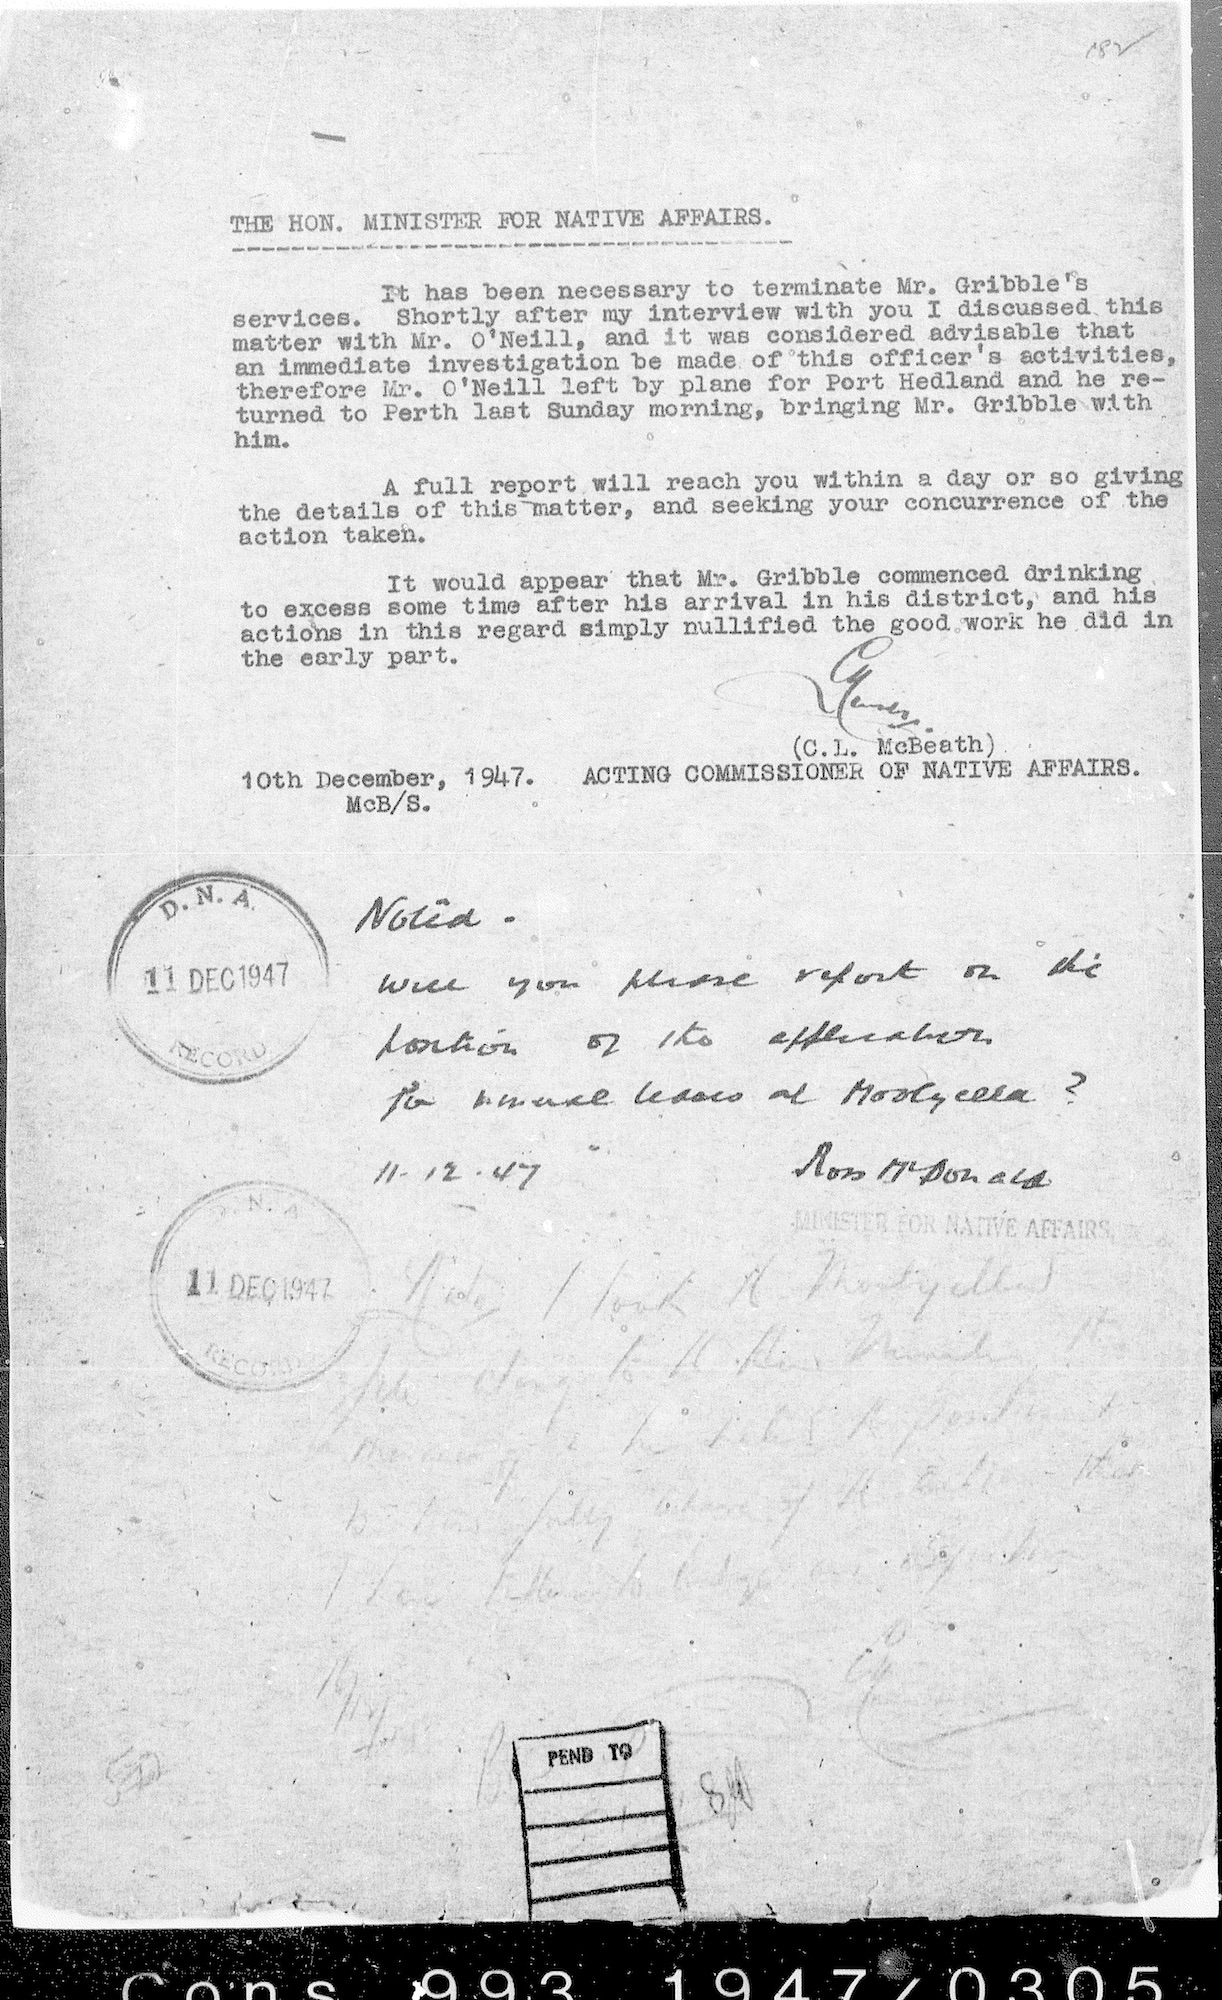 Acting Commissioner Lew McBeath to Minister for Native Affairs Ross McDonald, 10 December 1947